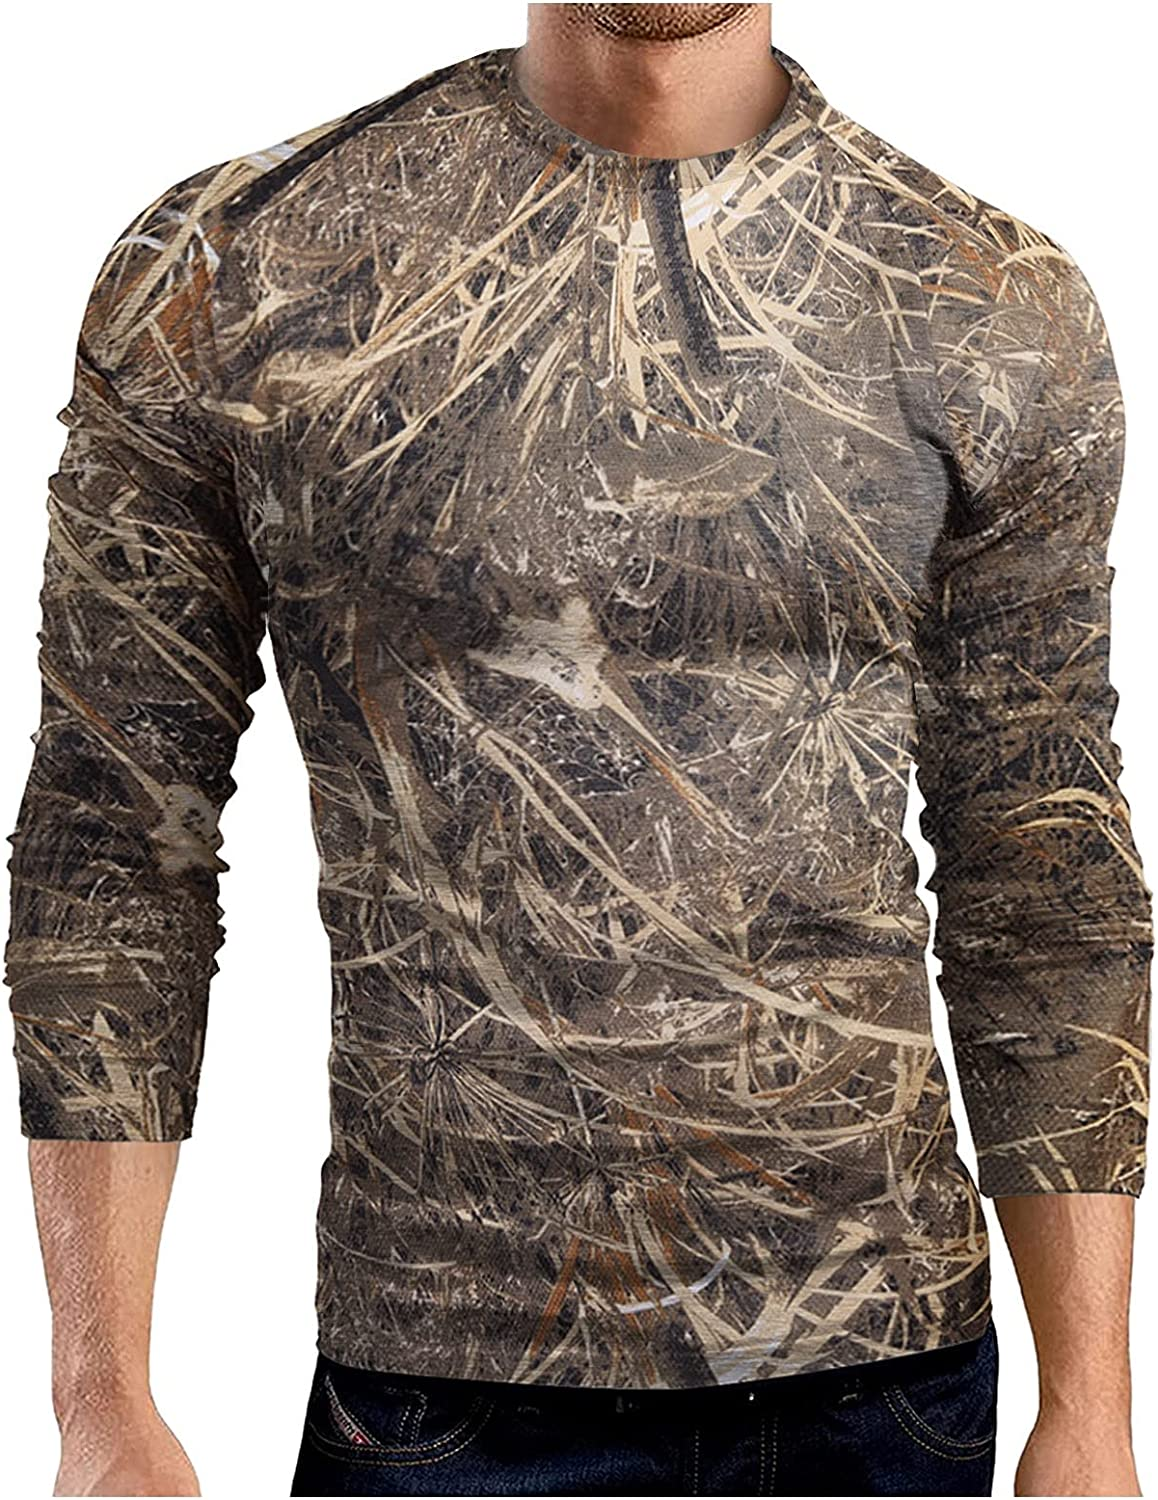 Mens Camouflage Tee Crew Neck Shirt Long Sleeve Lightweight Vintage Camo Athletic Quick Dry Outdoor Field Top Blouse